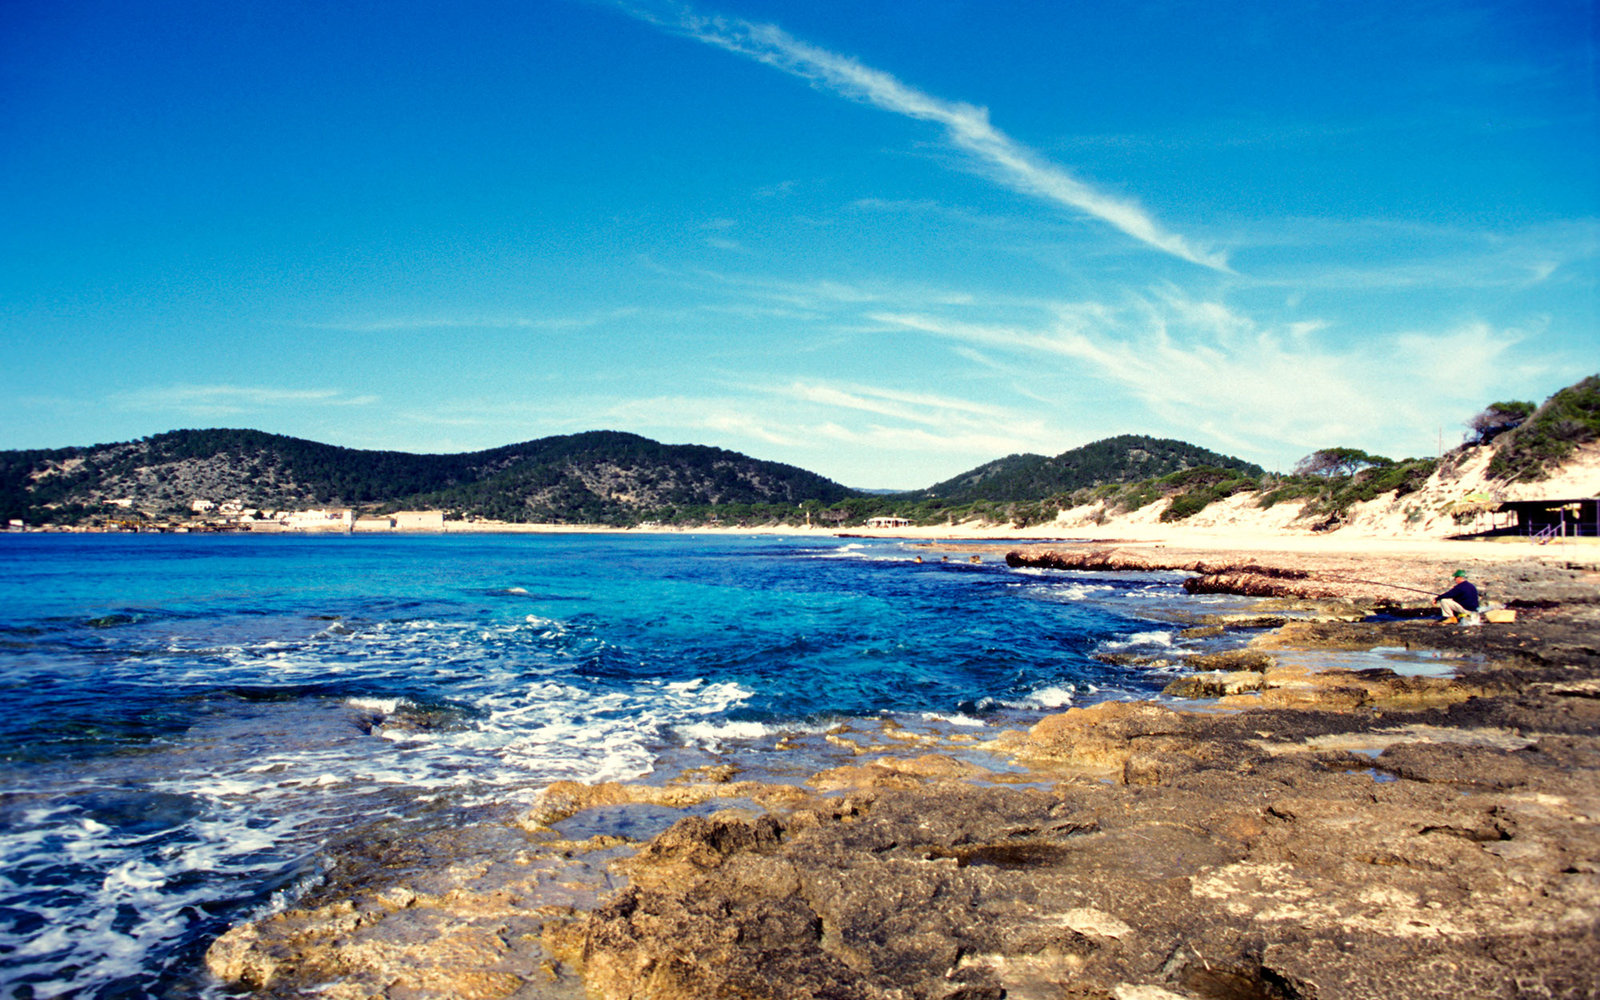 Sa Trincha, Las Salinas beach, off season, Ibiza, Spain